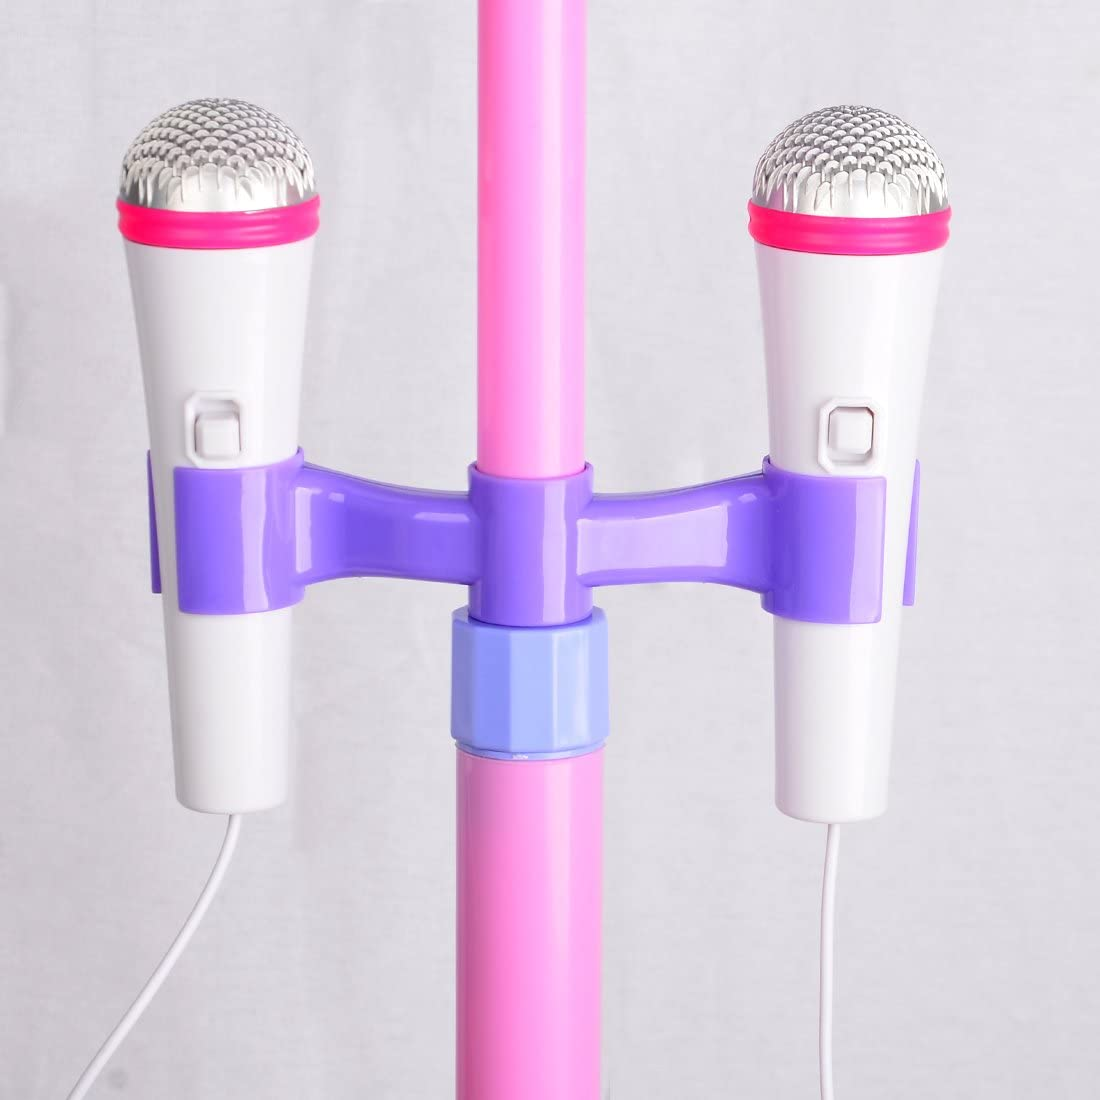 Karaoke Machine Play Set Best Gift for Your Kids on Birthday,Christmas Dittzz Kids Karaoke Microphone with Stand